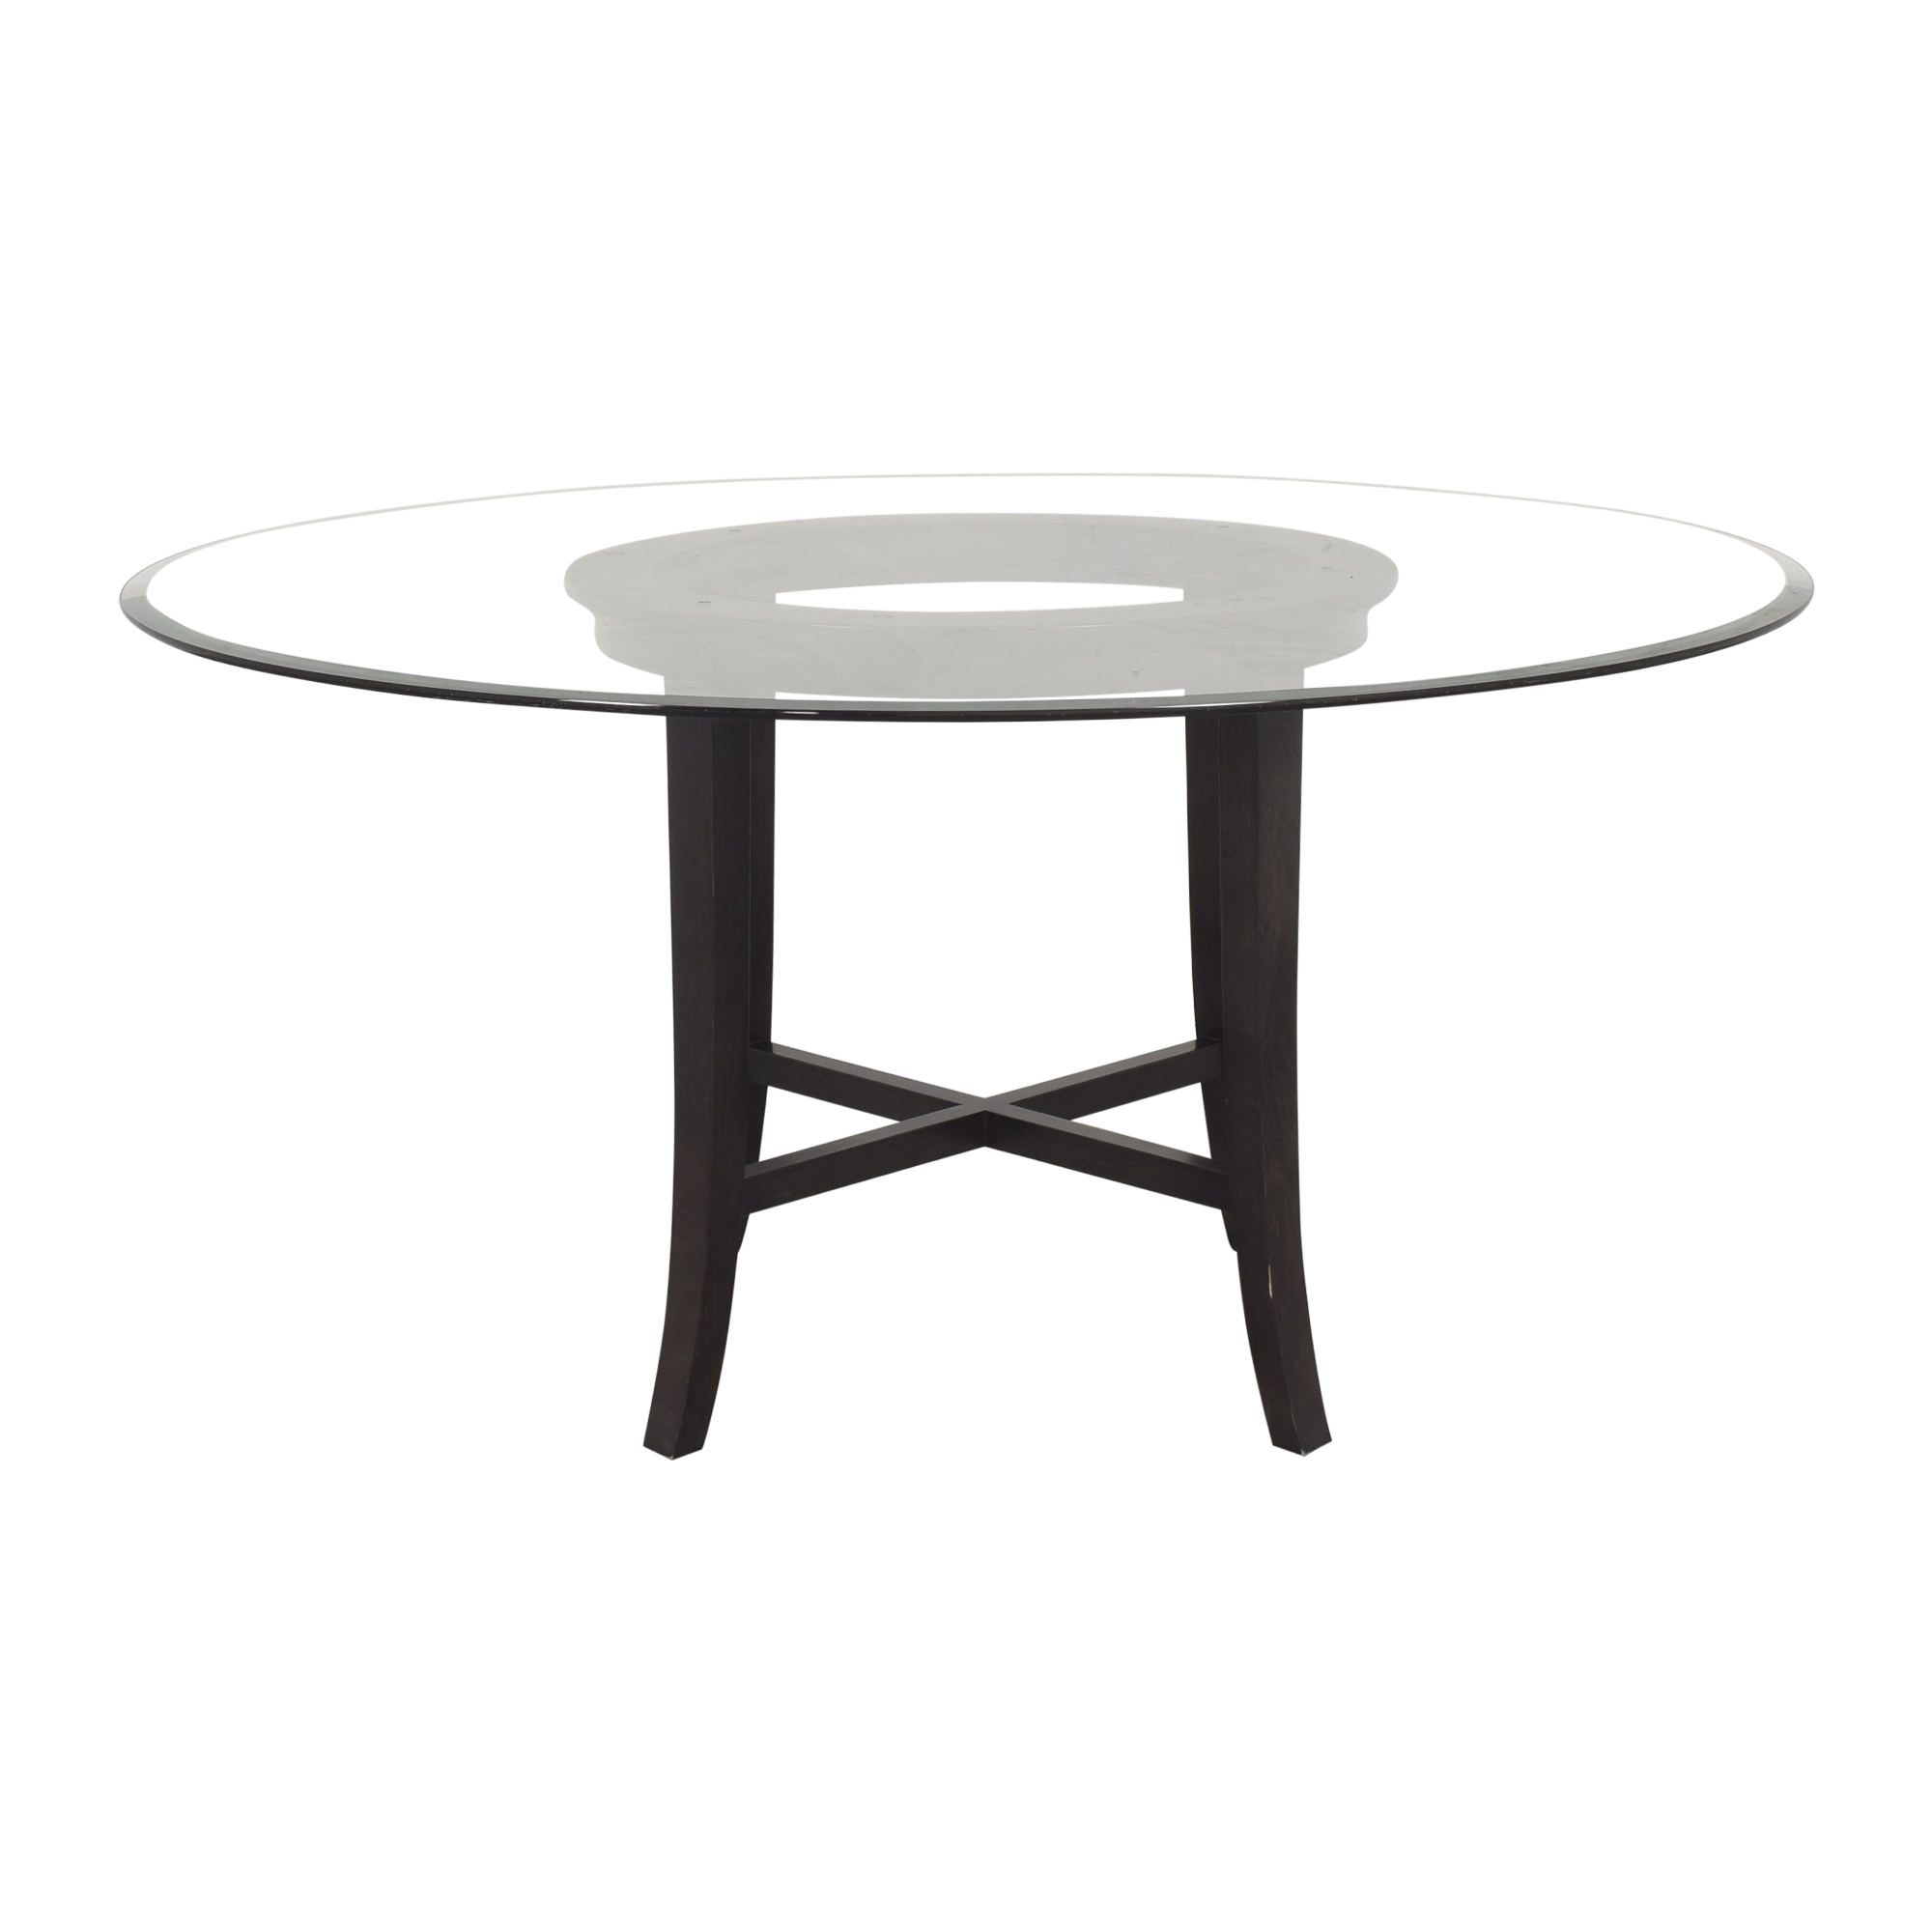 buy Crate & Barrel Halo Dining Table with Transparent Surface Crate & Barrel